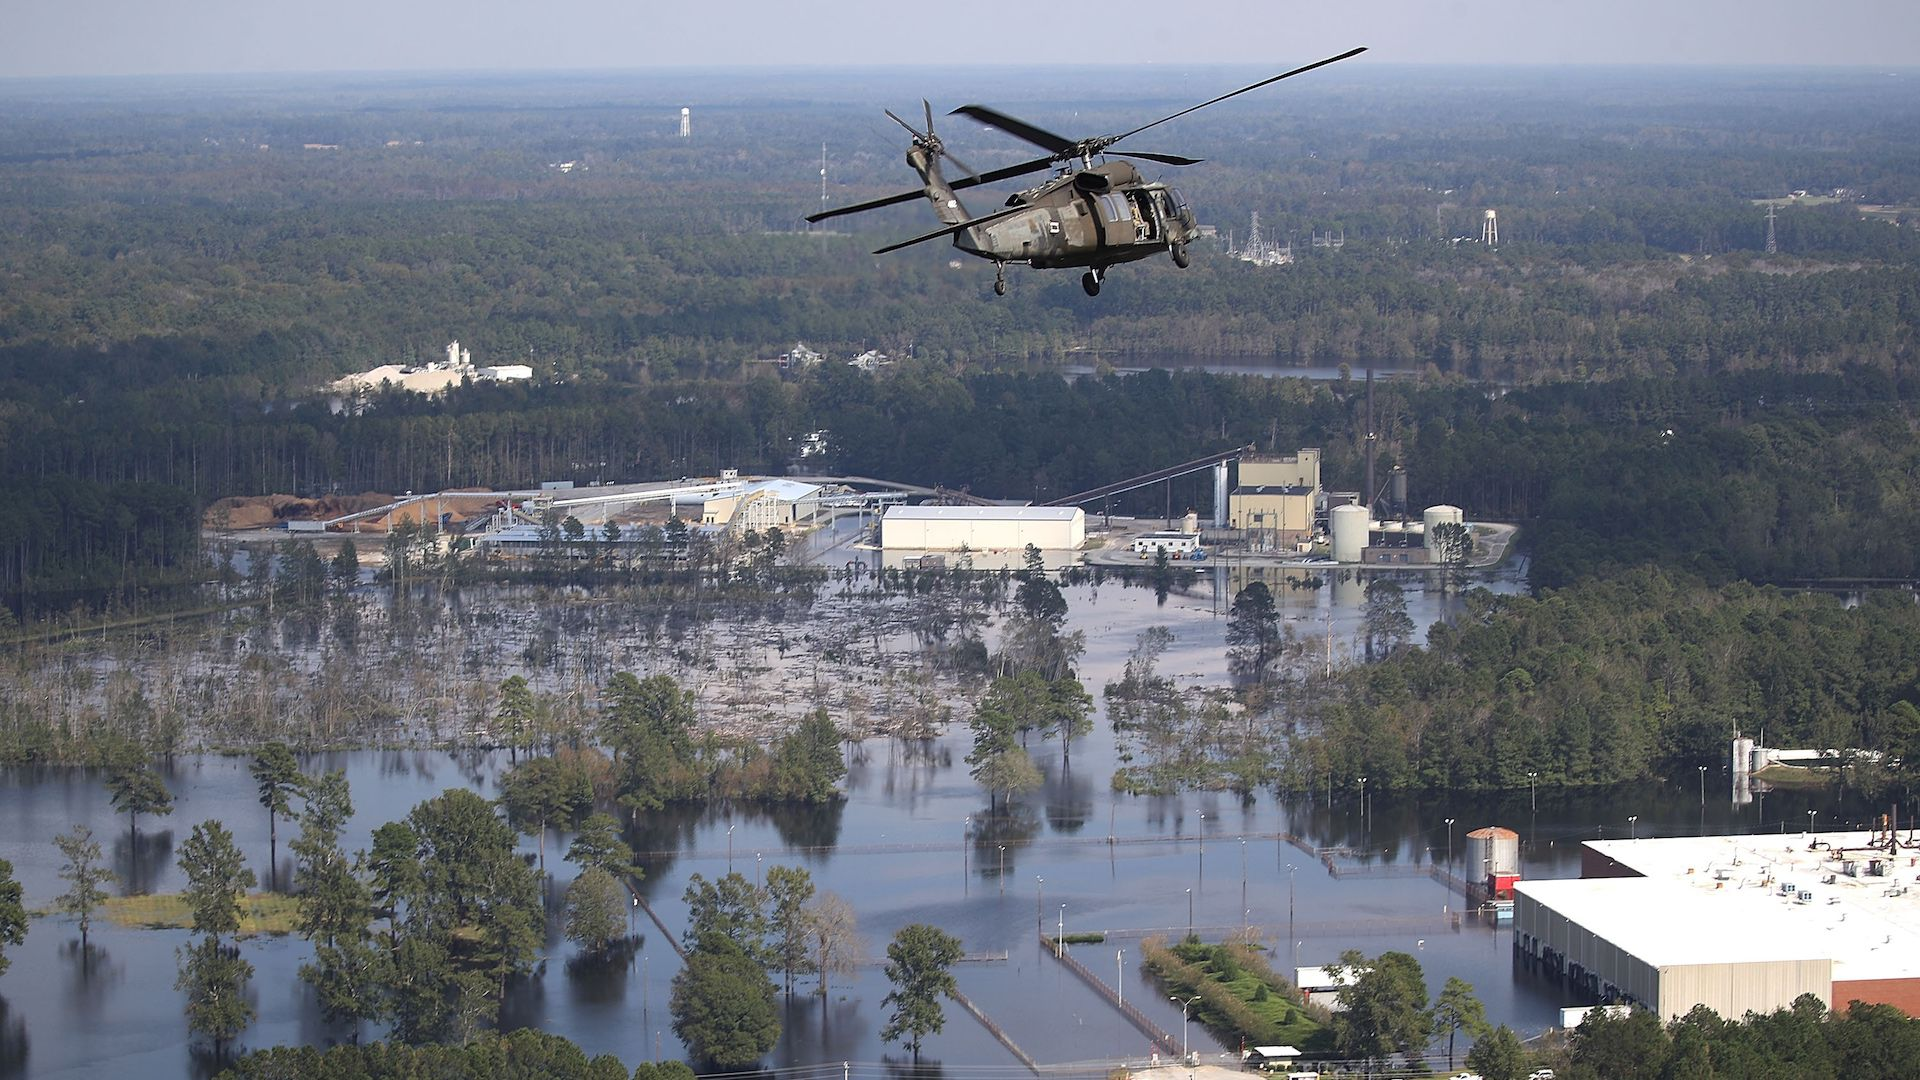 Hurricane Florence flooding: A U.S. Army helicopter flies over homes and businesses flooded by heavy rains from Hurricane Florence on September 20, 2018 in Lumberton, North Carolina.